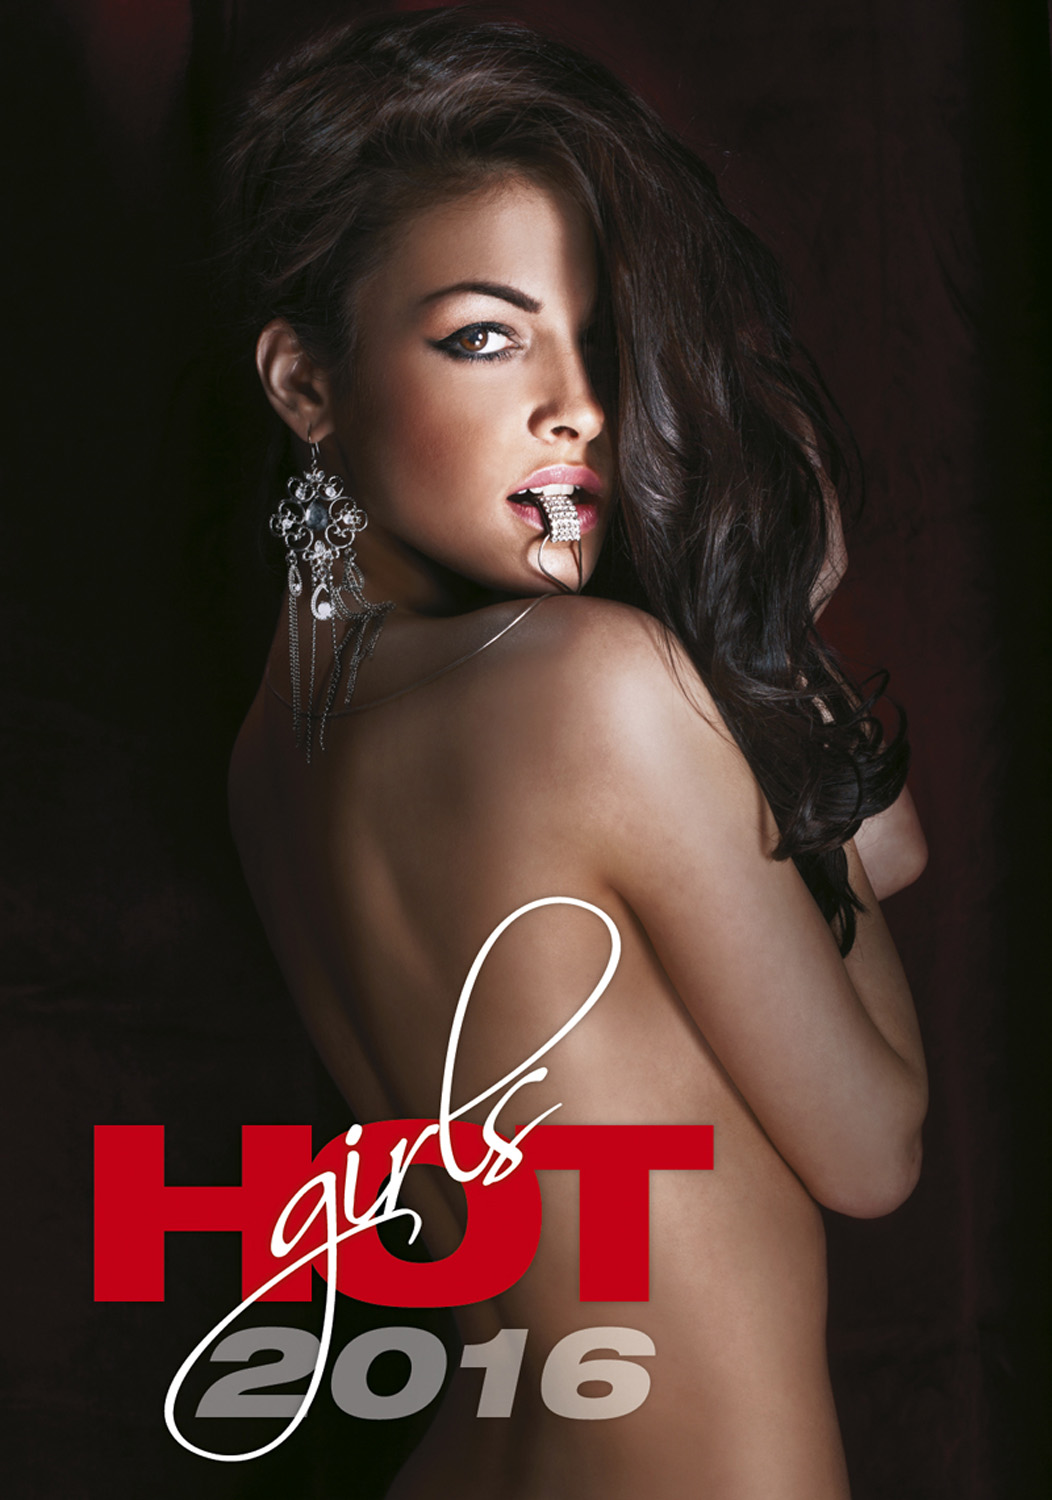 Hot Girls Wall Calendar 2016 8595230632630